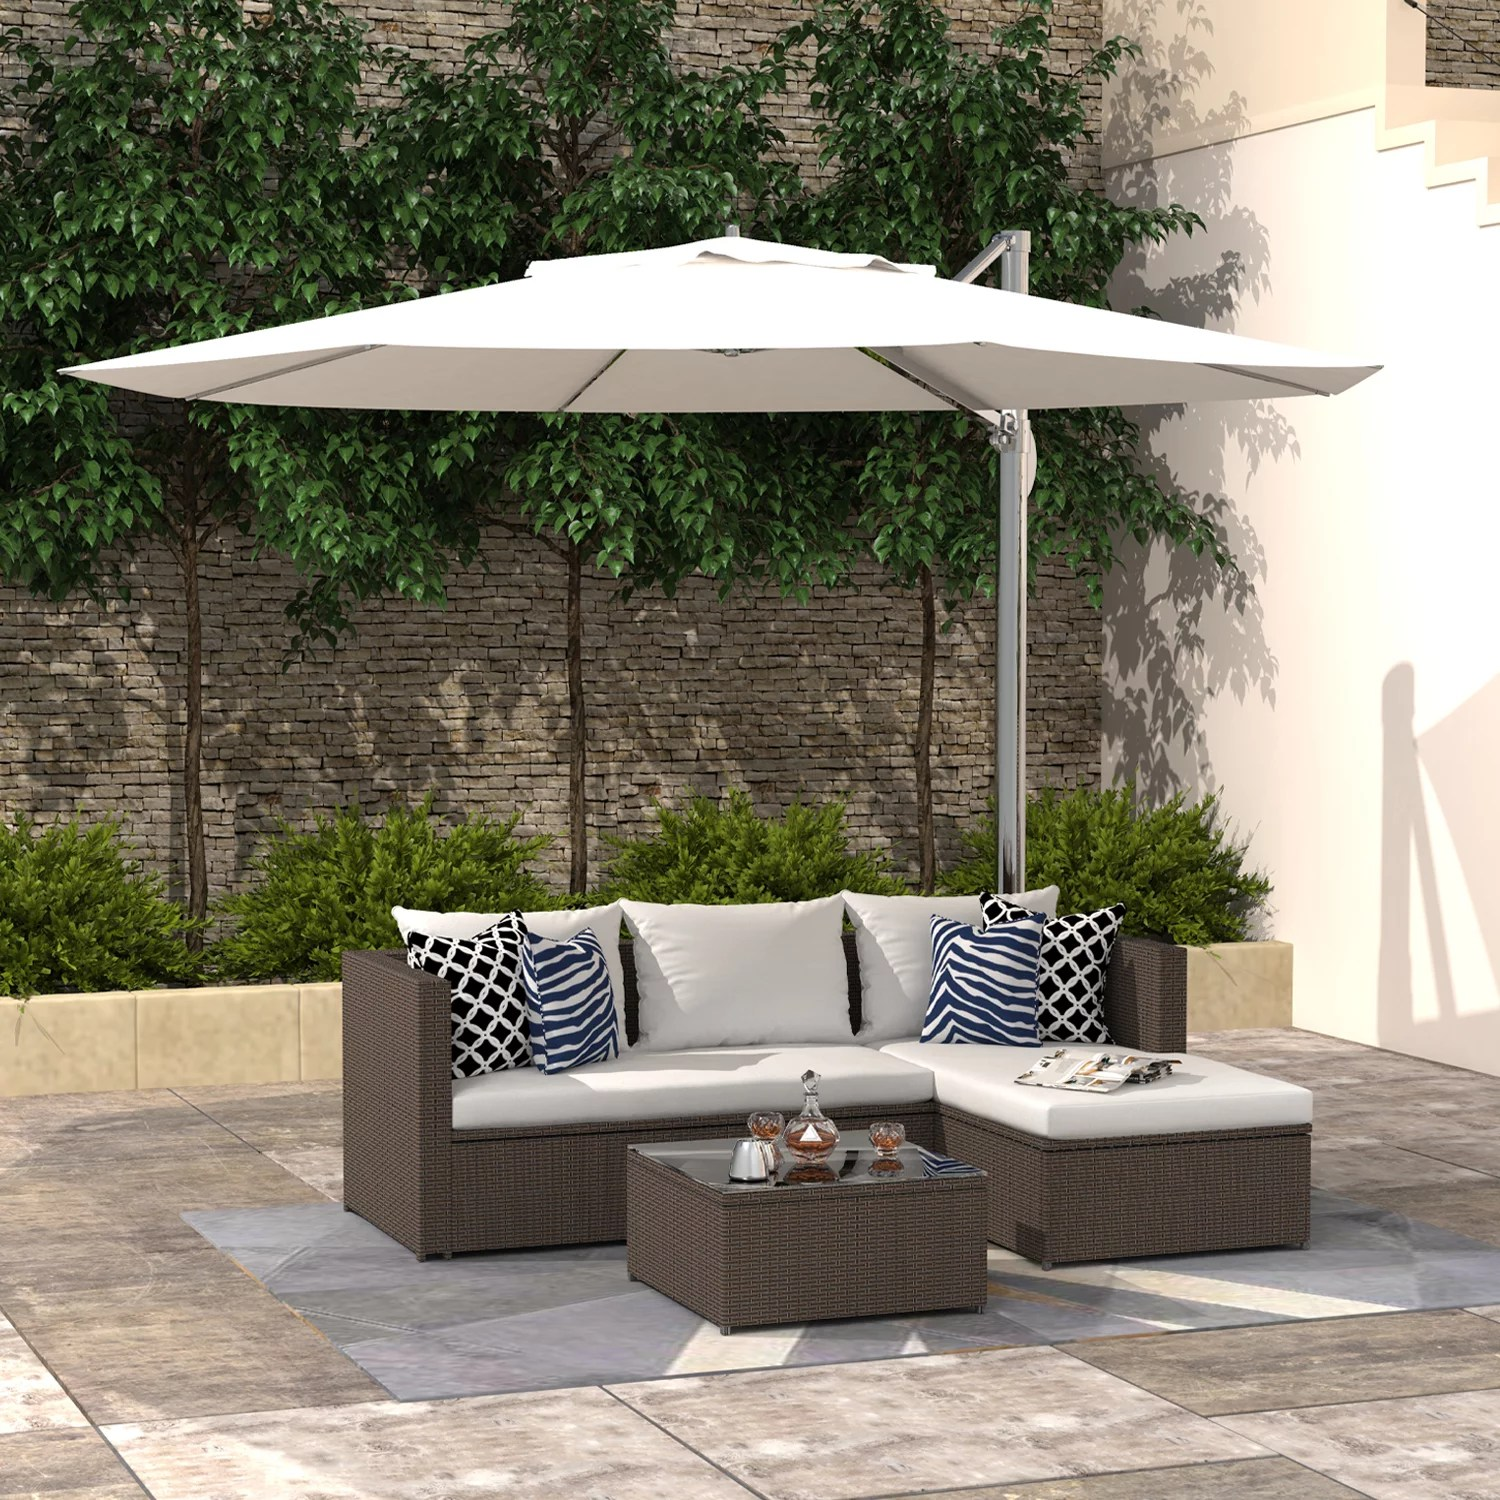 finefind outdoor sectional sofa patio furniture set all weather wicker set for backyard garden balcony or small space